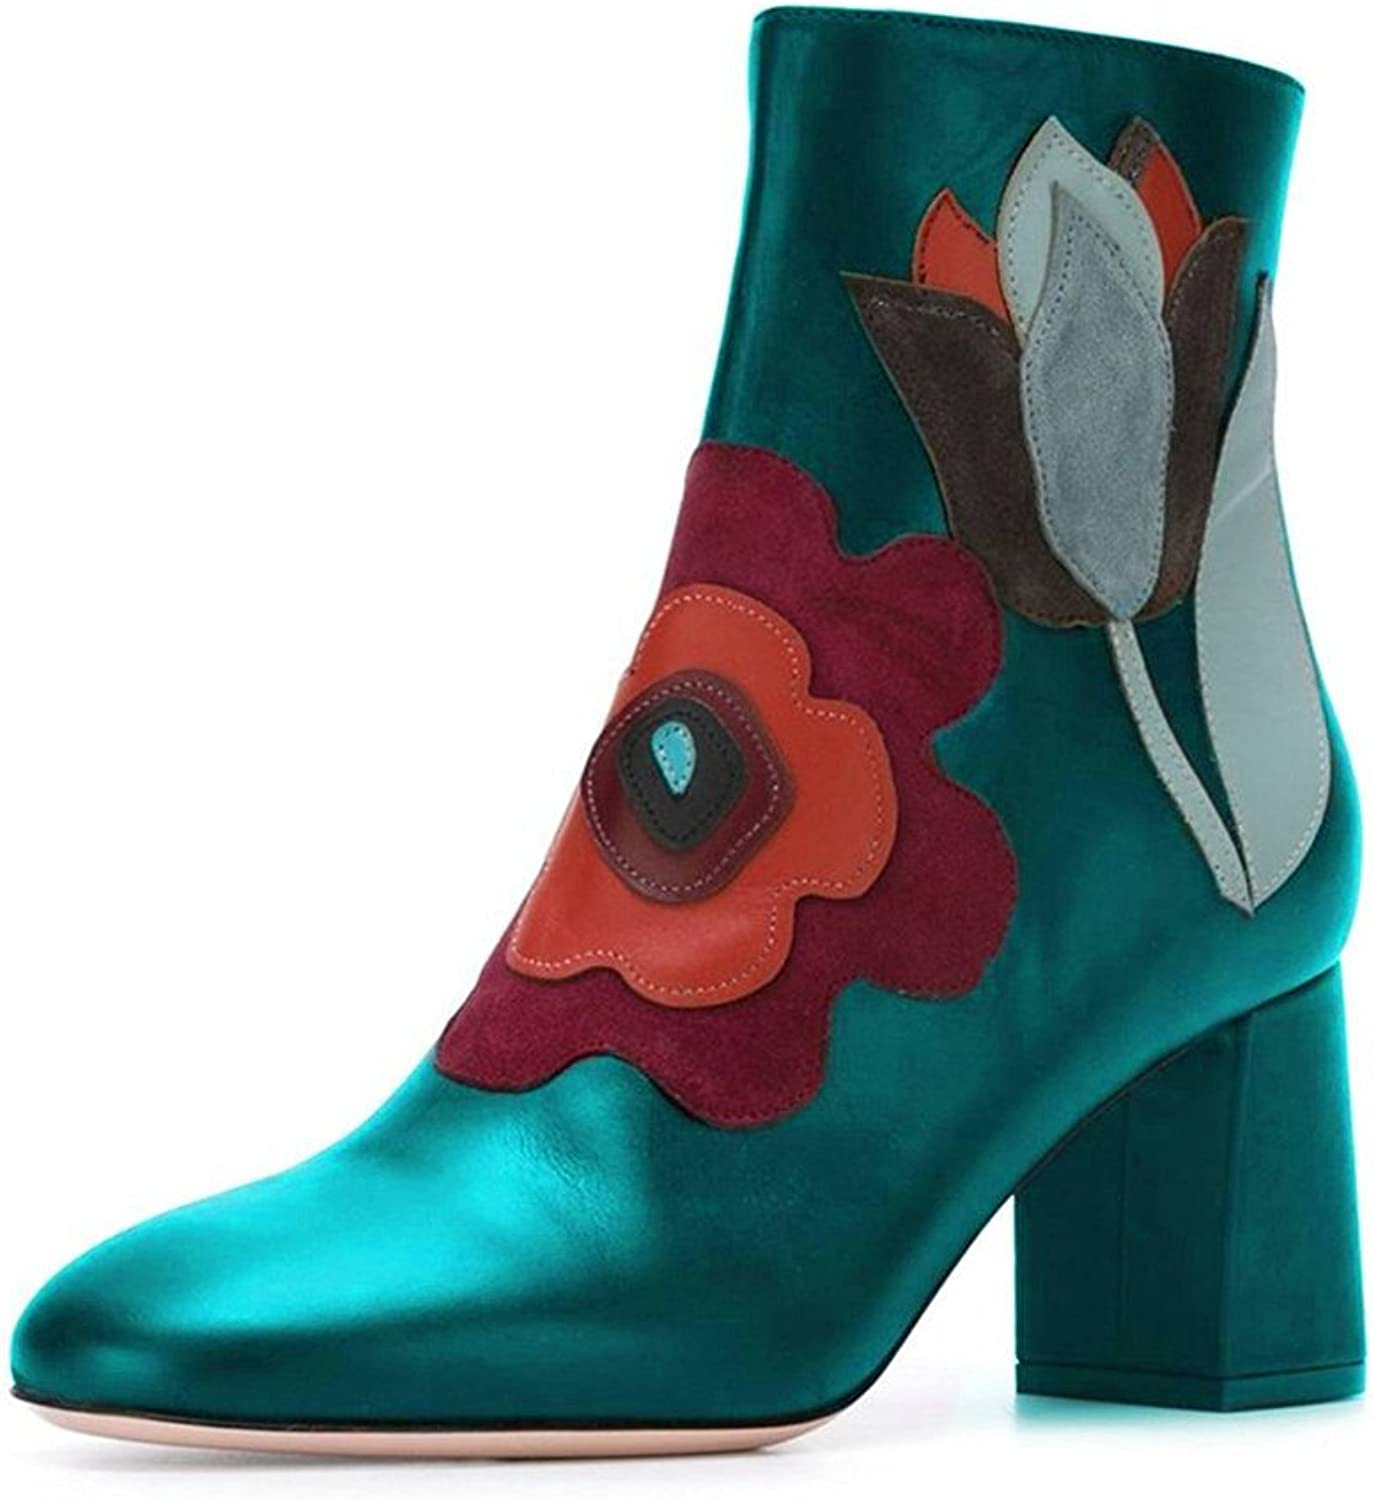 FSJ Womens Pointy Toe Chunky Heel Ankle High Floral Boots Zippered shoes Size 4-15 US